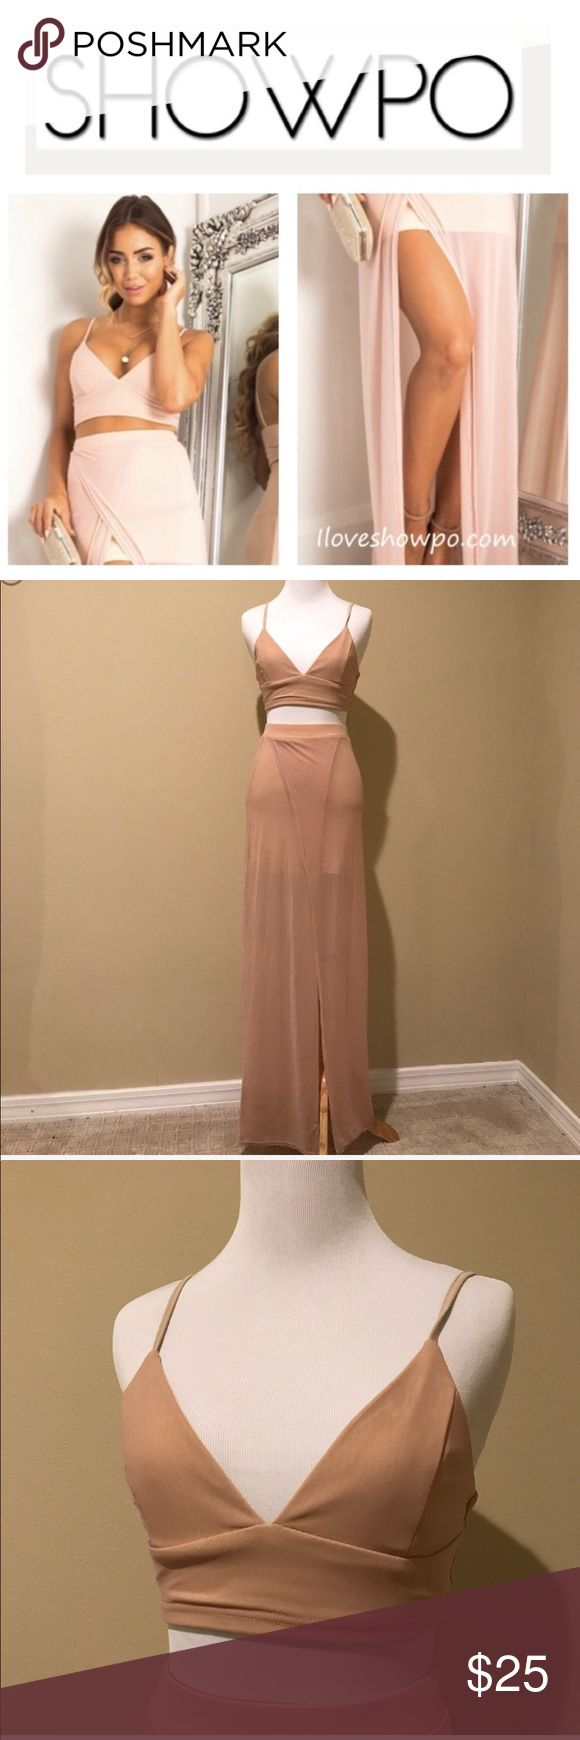 Showpo body language set in blush EUC, worn once, Aussie size 8(US small) please review Conversion chart in photos to verify sizing.   Look effortlessly stunning in this blush two piece set. Add a body chain for a bohemian vibe or a pair of heels and delicate jewelry for a more formal look. showpo Skirts Skirt Sets